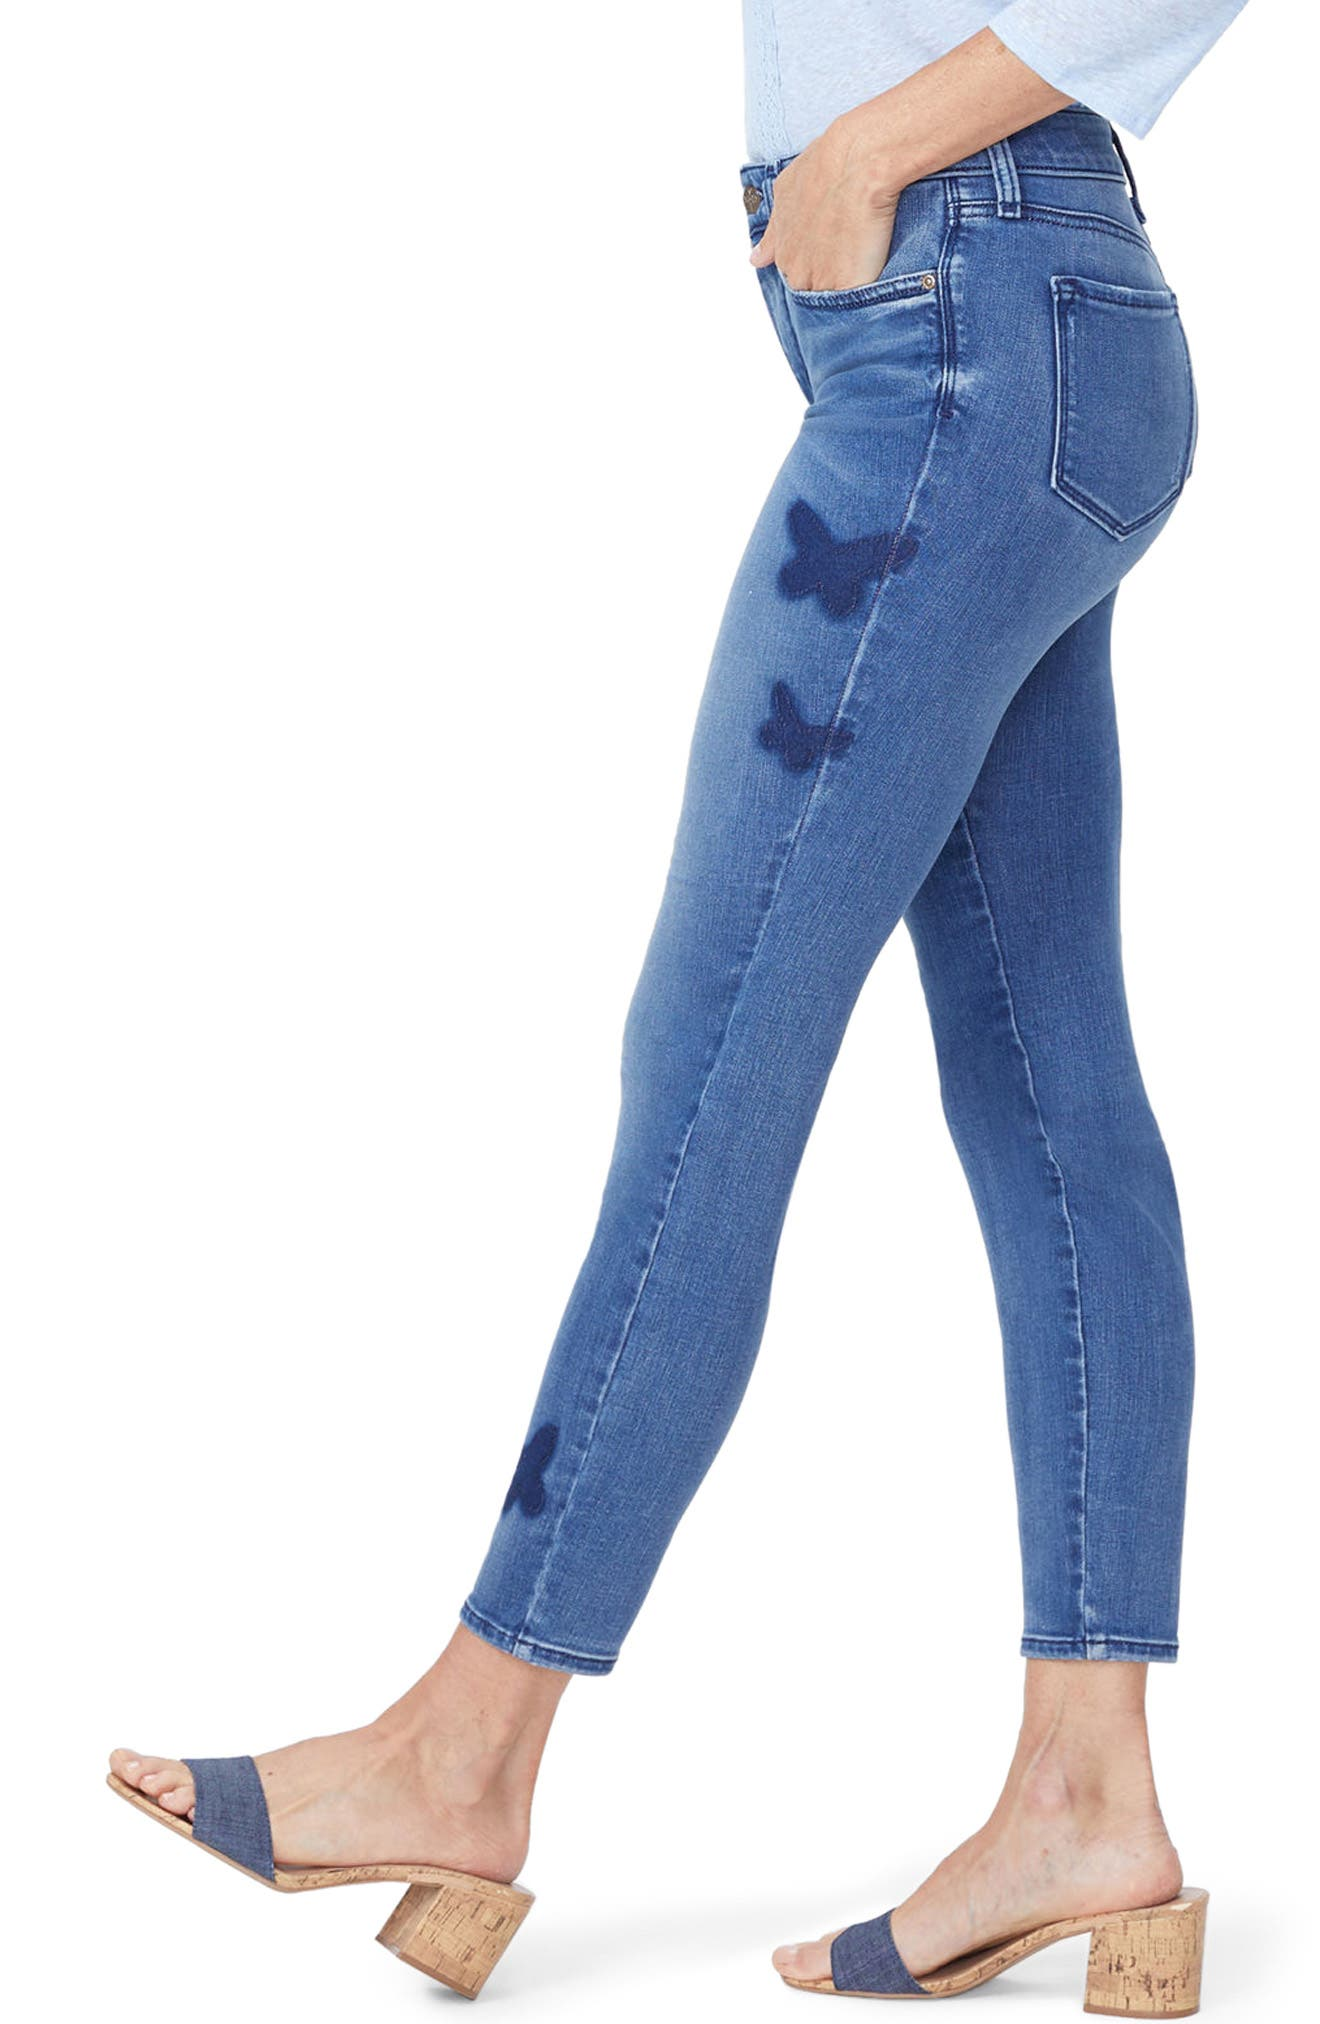 Ami Butterfly Skinny Jeans,                             Alternate thumbnail 3, color,                             Wishful